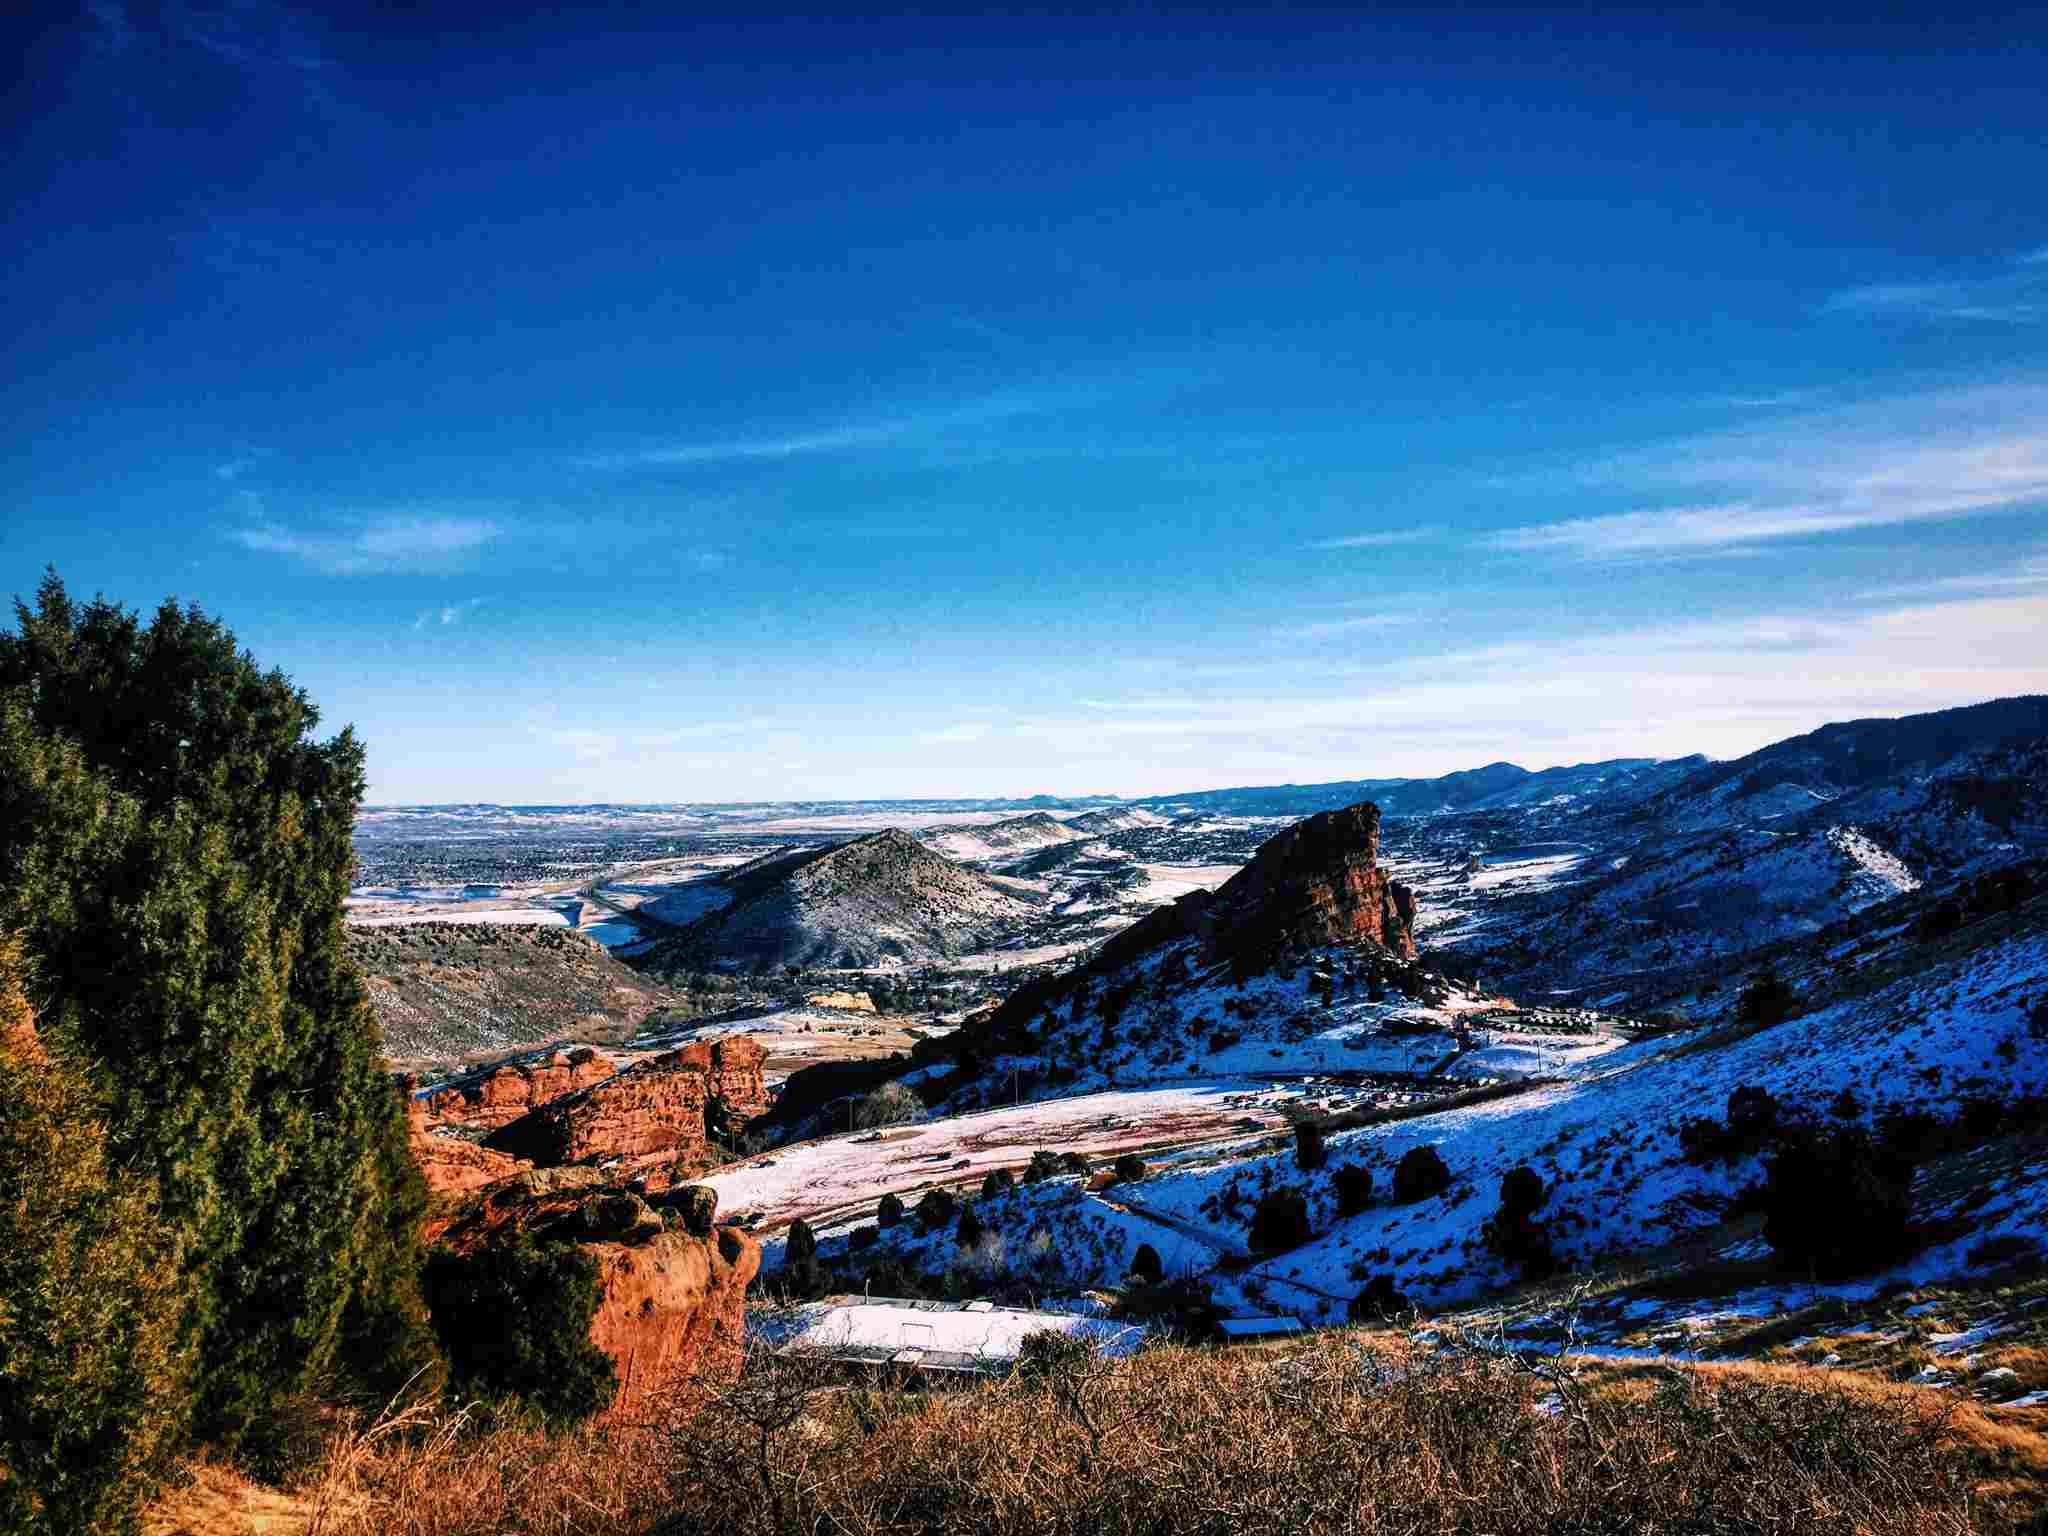 View of Red rocks amphitheater